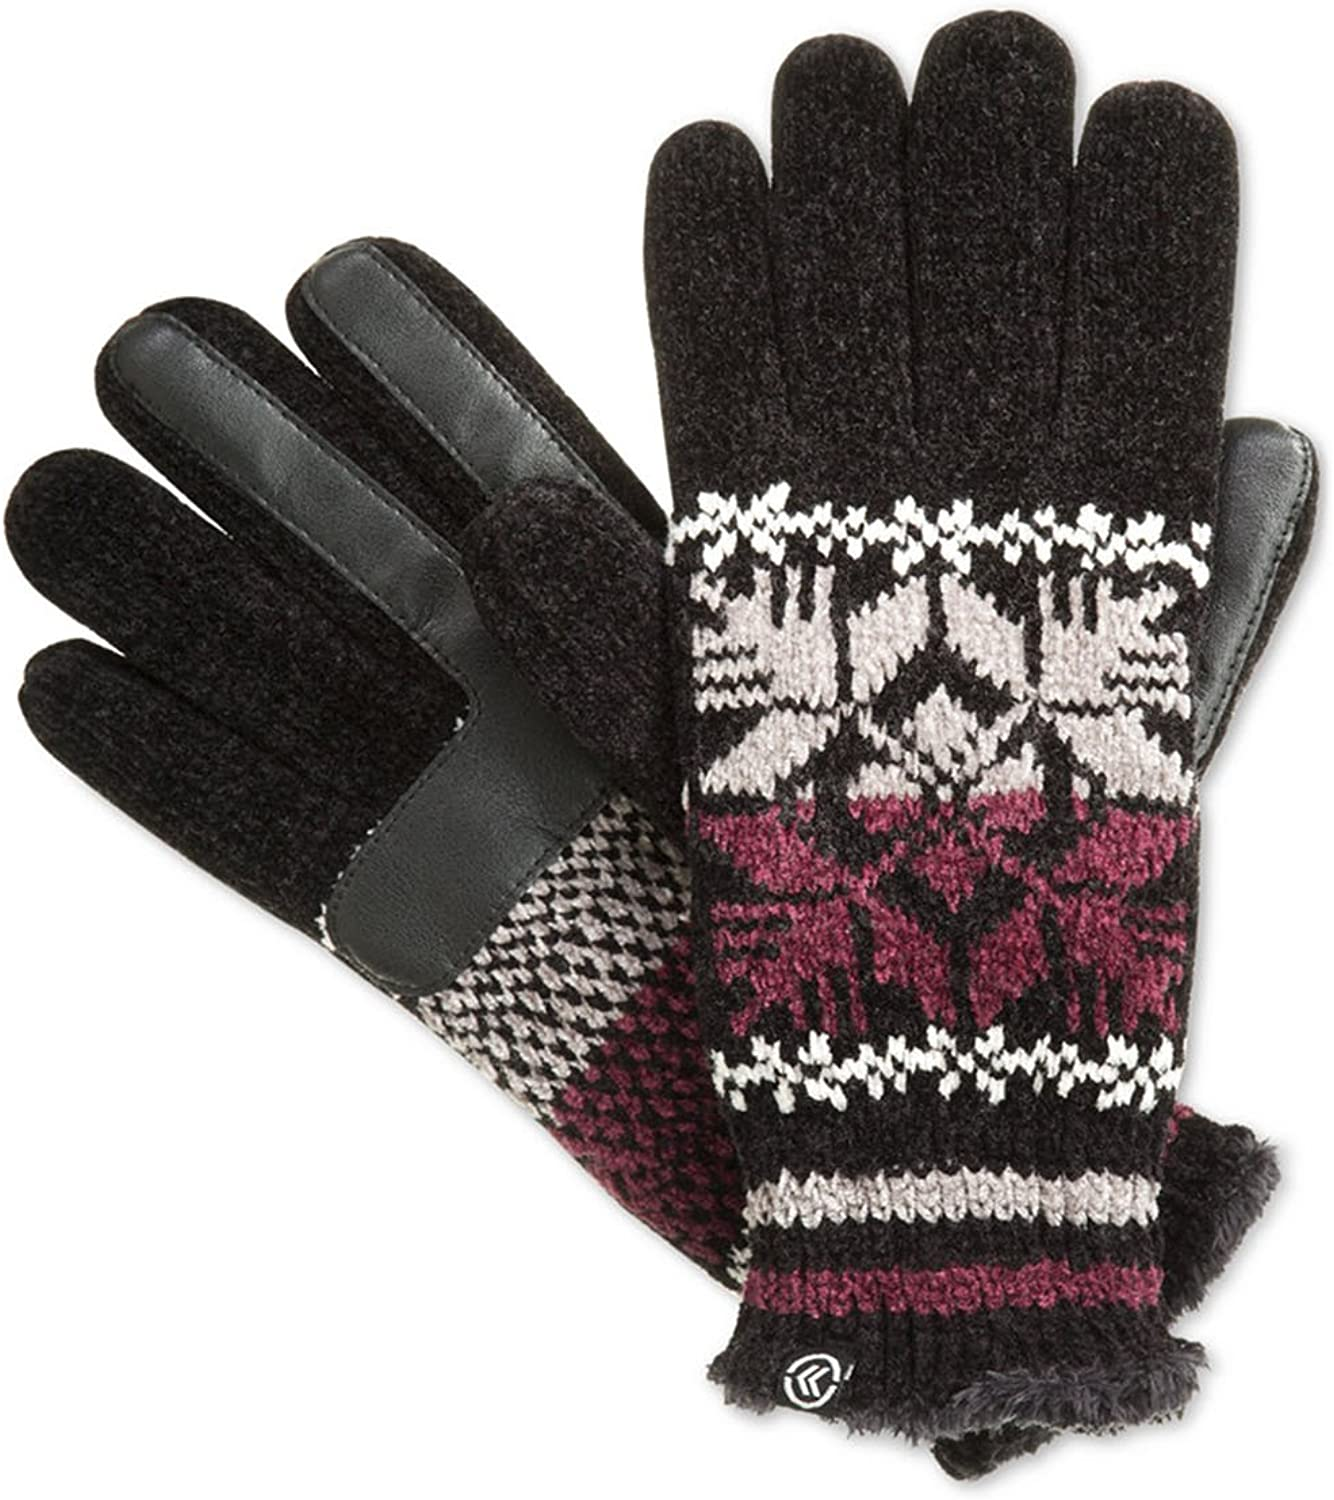 Isotoner Signature women/'s smartouch gray chenille knit gloves one size